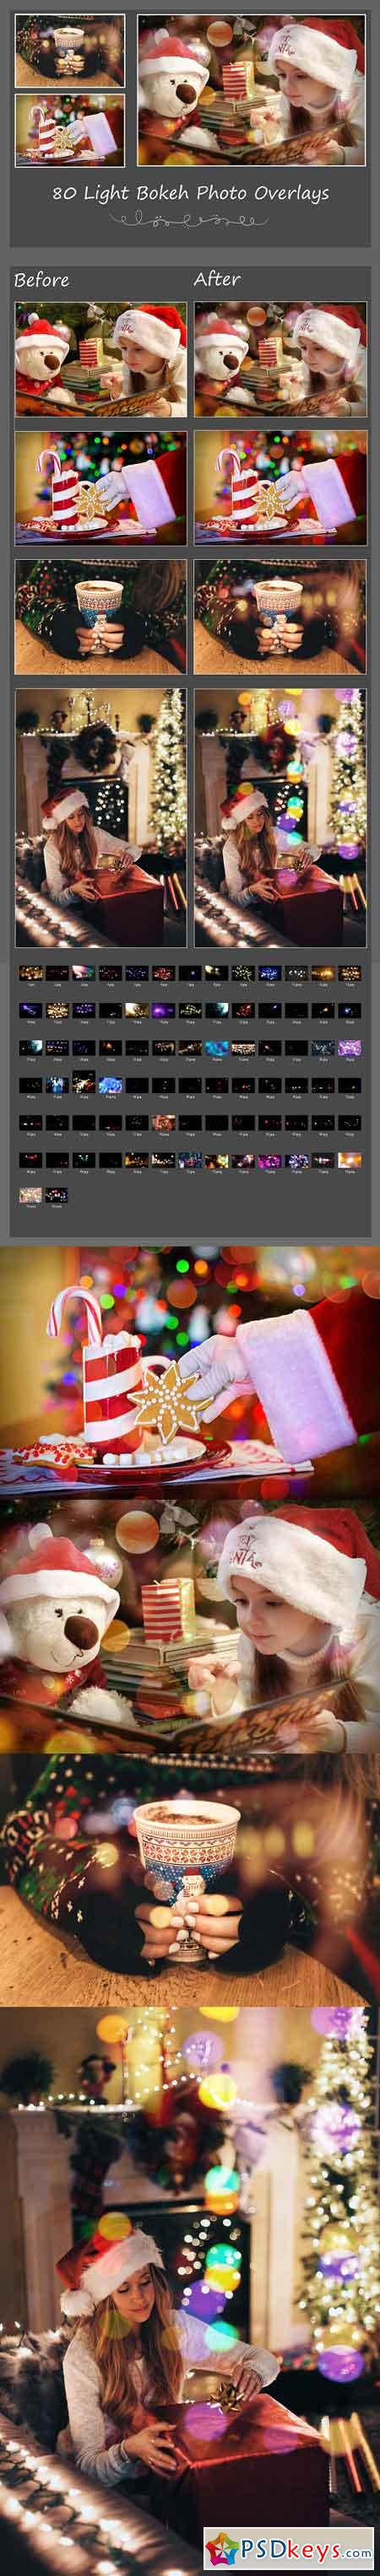 80 Light Bokeh Photo Overlays 2735346